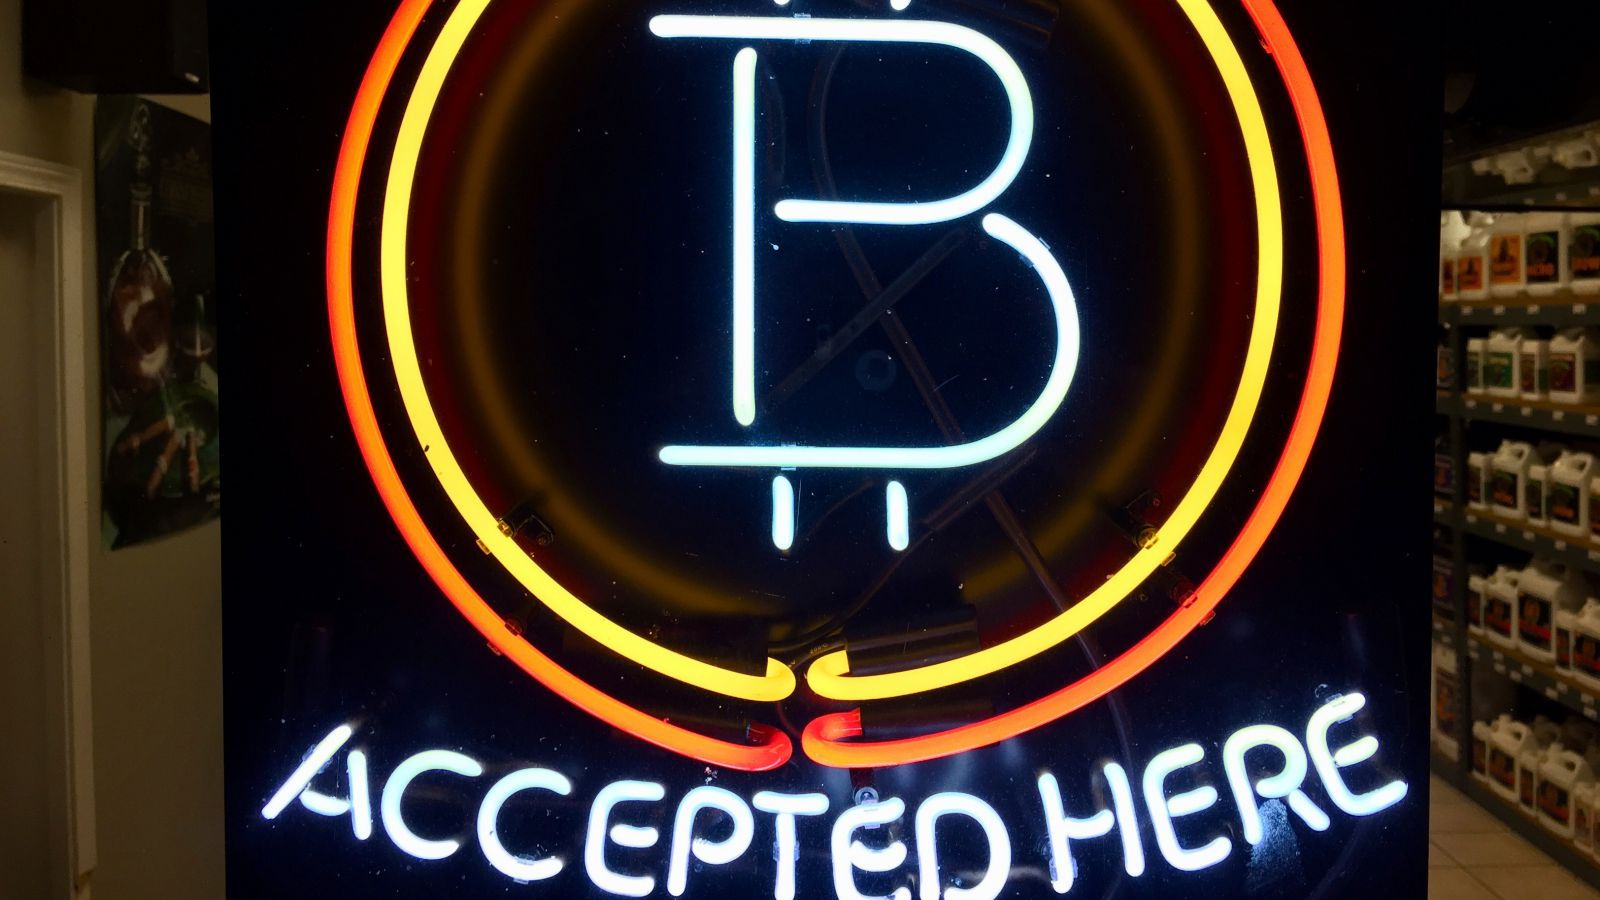 In this Feb. 7, 2018 file photo, a neon sign hanging in the window of Healthy Harvest Indoor Gardening in Hillsboro, Ore., shows that the business accepts bitcoin as payment. A raft of recent cyber-security firms and governments now cite the rising trend of 'crypto-jacking' _ in which devices are infected with invisible malicious cryptocurrency mining software that uses the computing power of victims' devices to mine virtual currency _ as the main cyber security threat to businesses and consumers worldwide